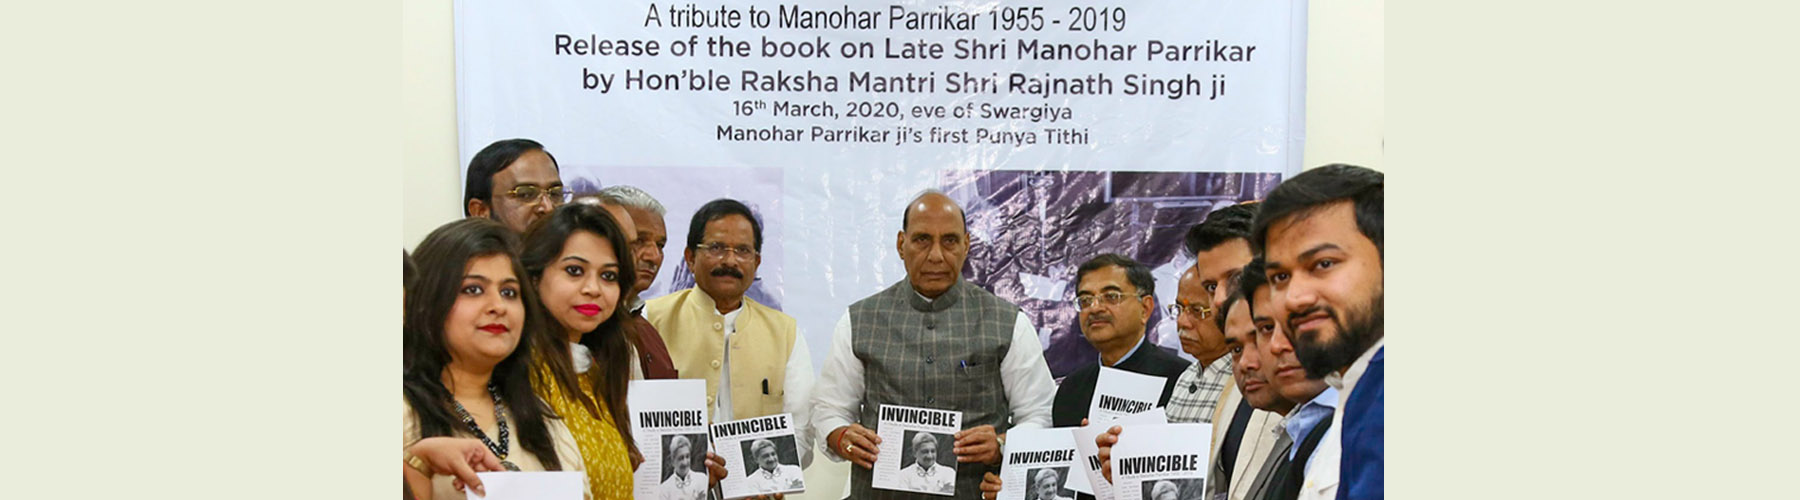 Raksha Mantri Shri Rajnath Singh releasing a book on former Defence Minister late Manohar Parrikar in New Delhi on Monday, March 16, 2020. Also seen is Raksha Rajya Mantri Shri Shripad Naik